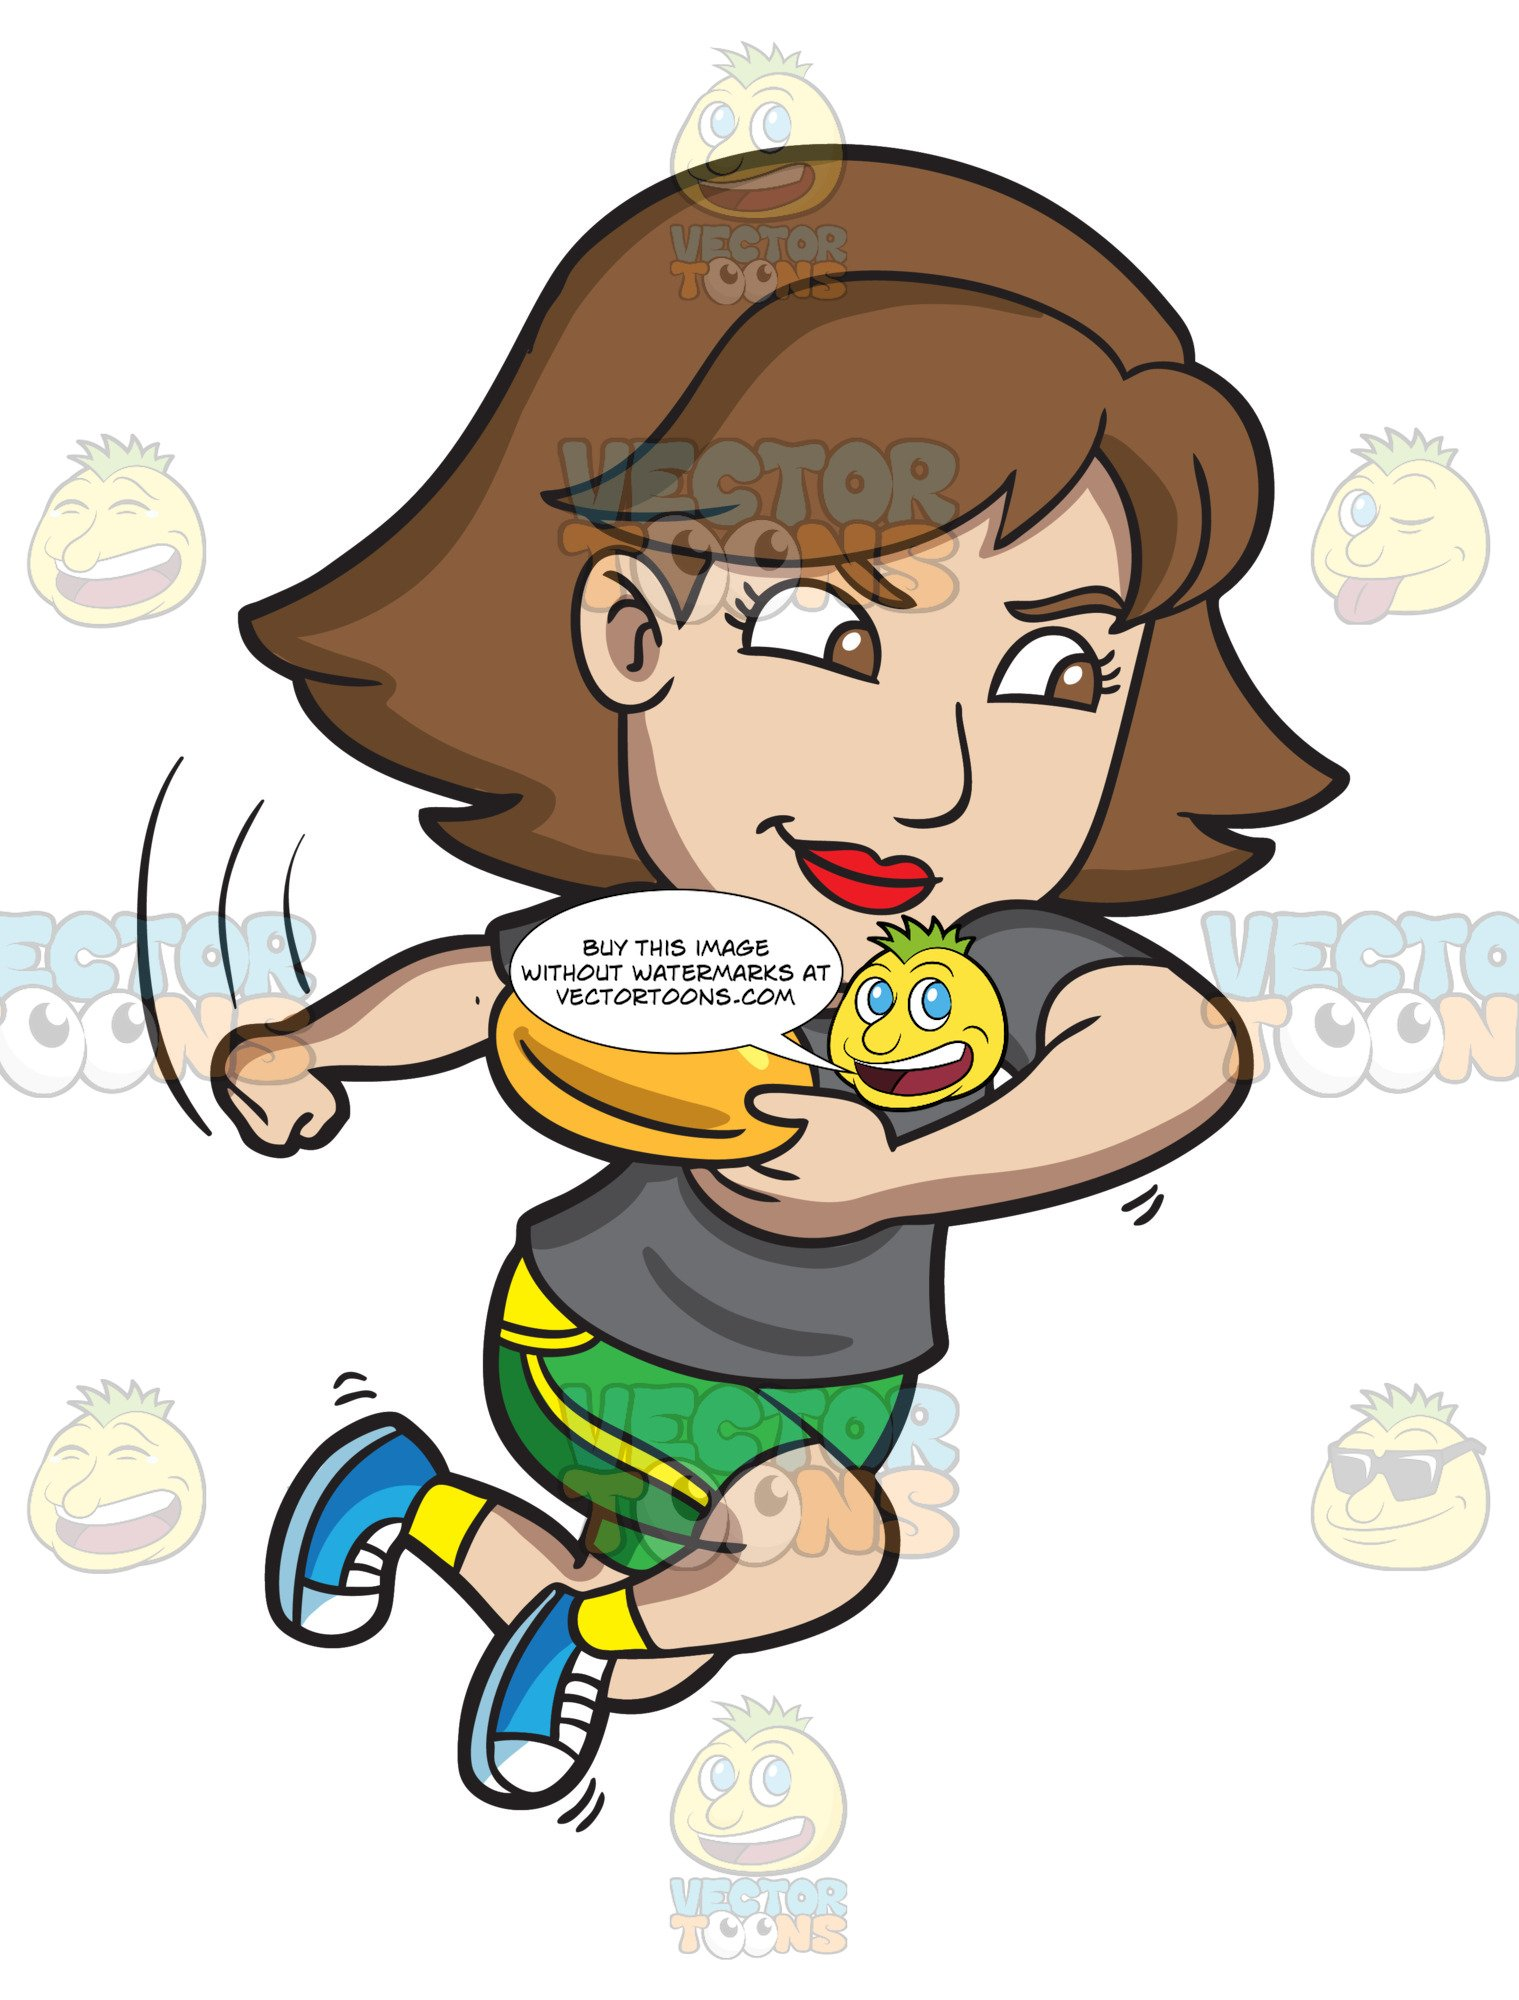 Frisbee clipart thrown. A competitive woman aims